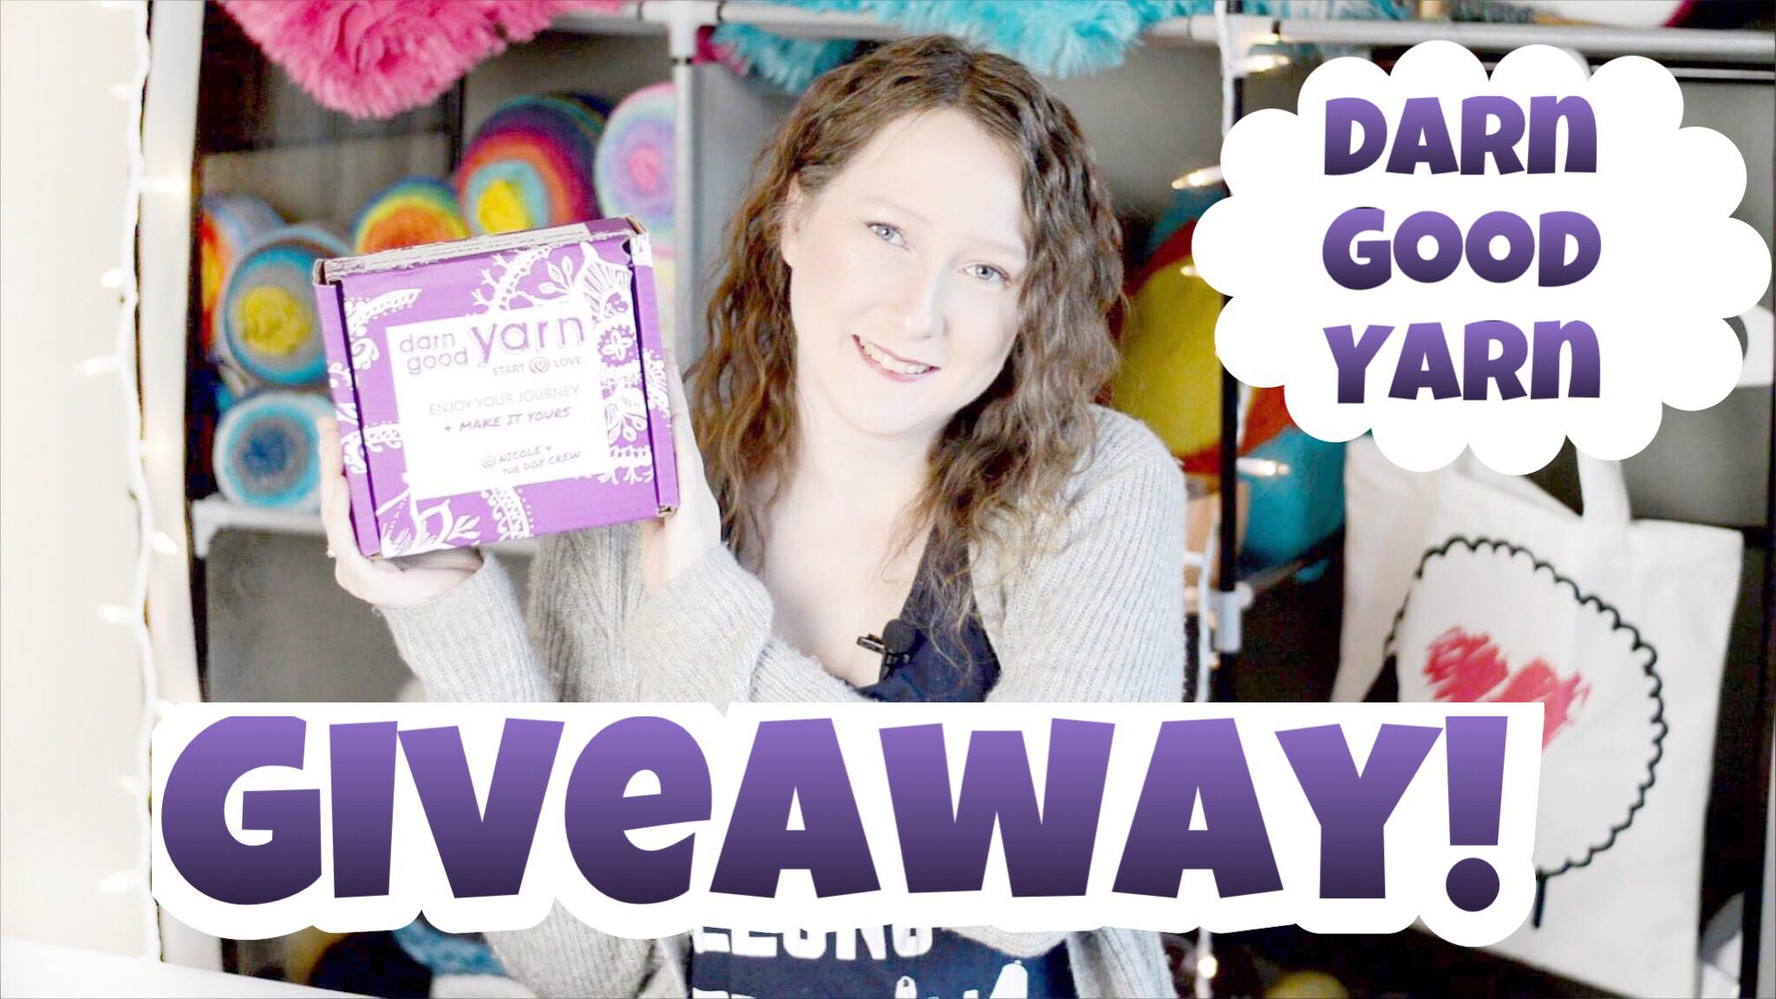 Darn Good Yarn Giveaway & Unboxing